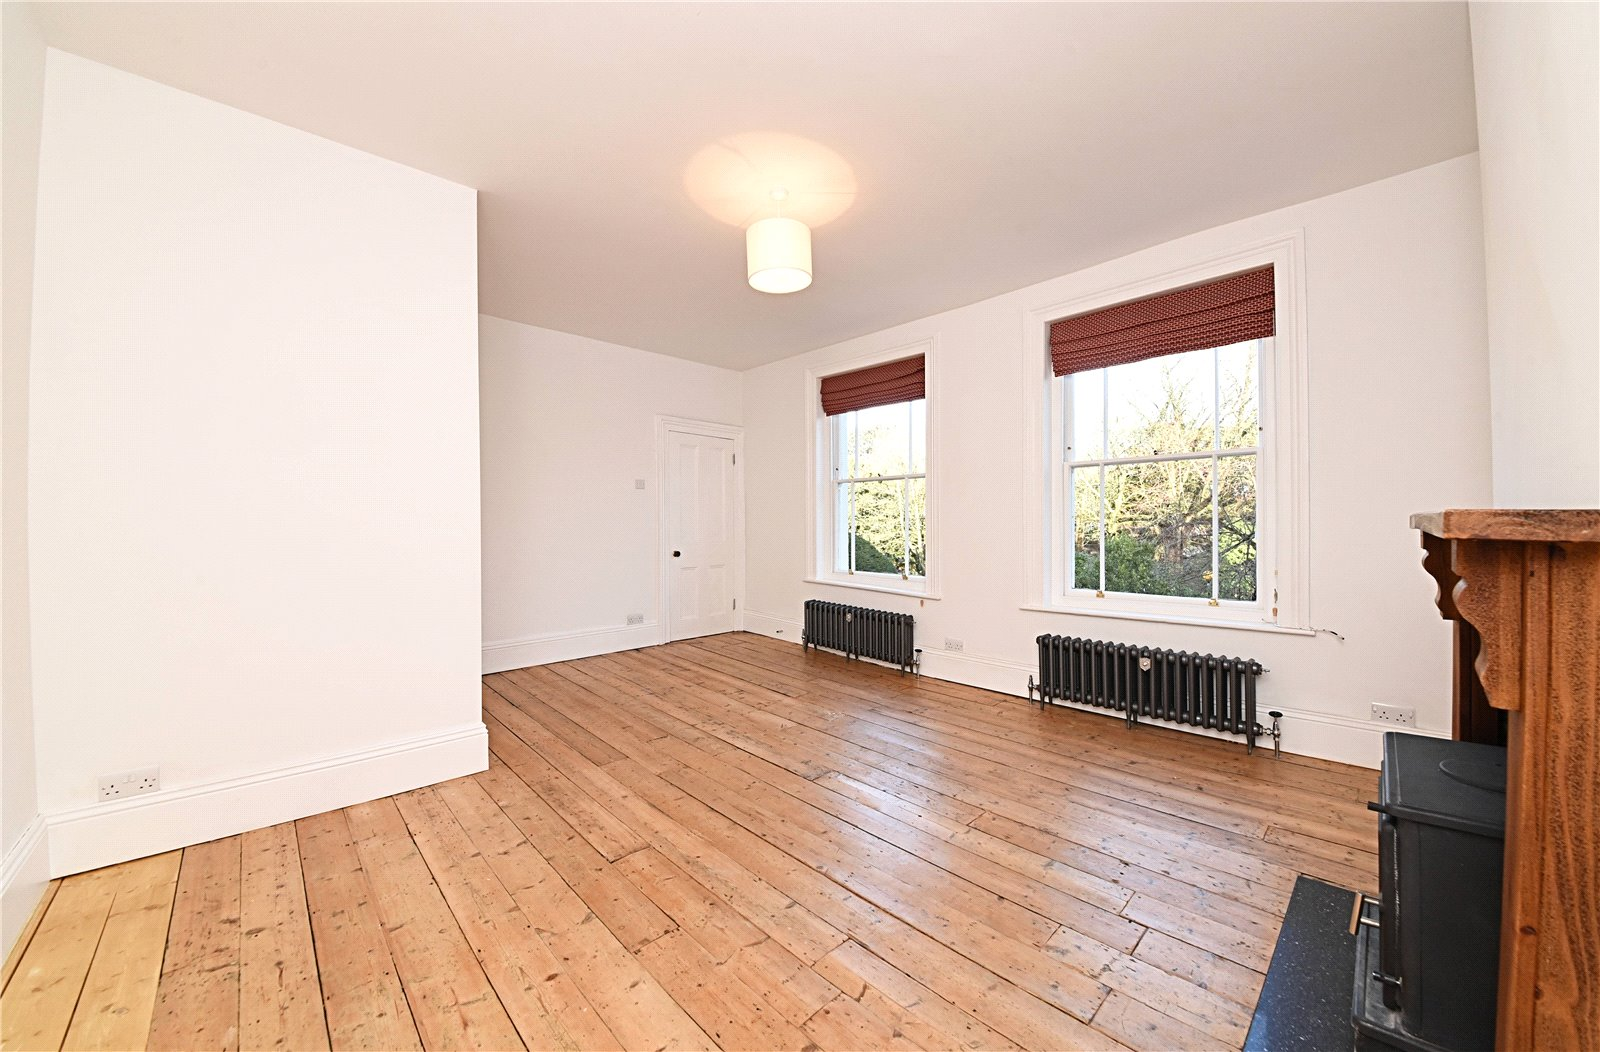 3 bed apartment to rent in Wood Street, High Barnet  - Property Image 6